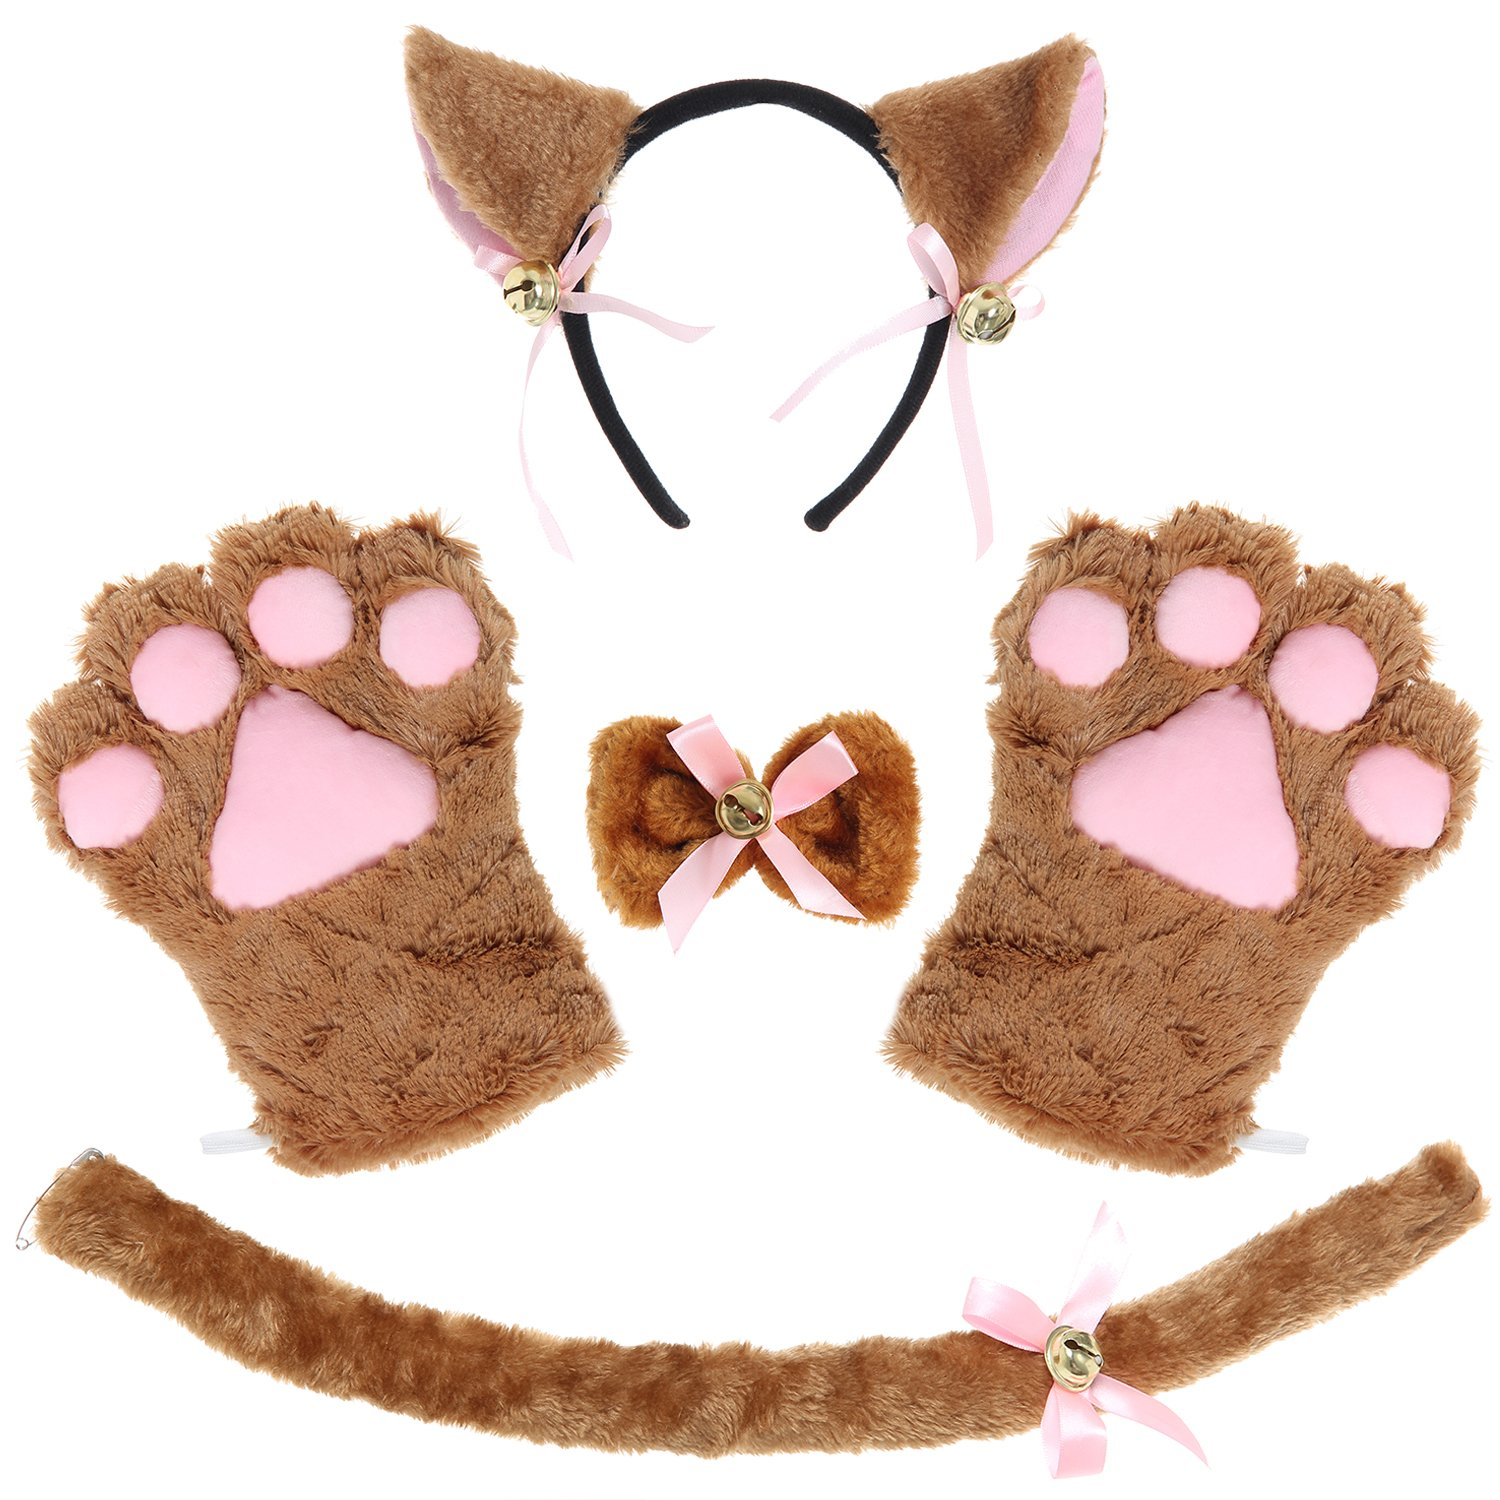 JustinCostume Cat Cosplay Set Ears Tail Collar Paws HXY-005-6519-Black2